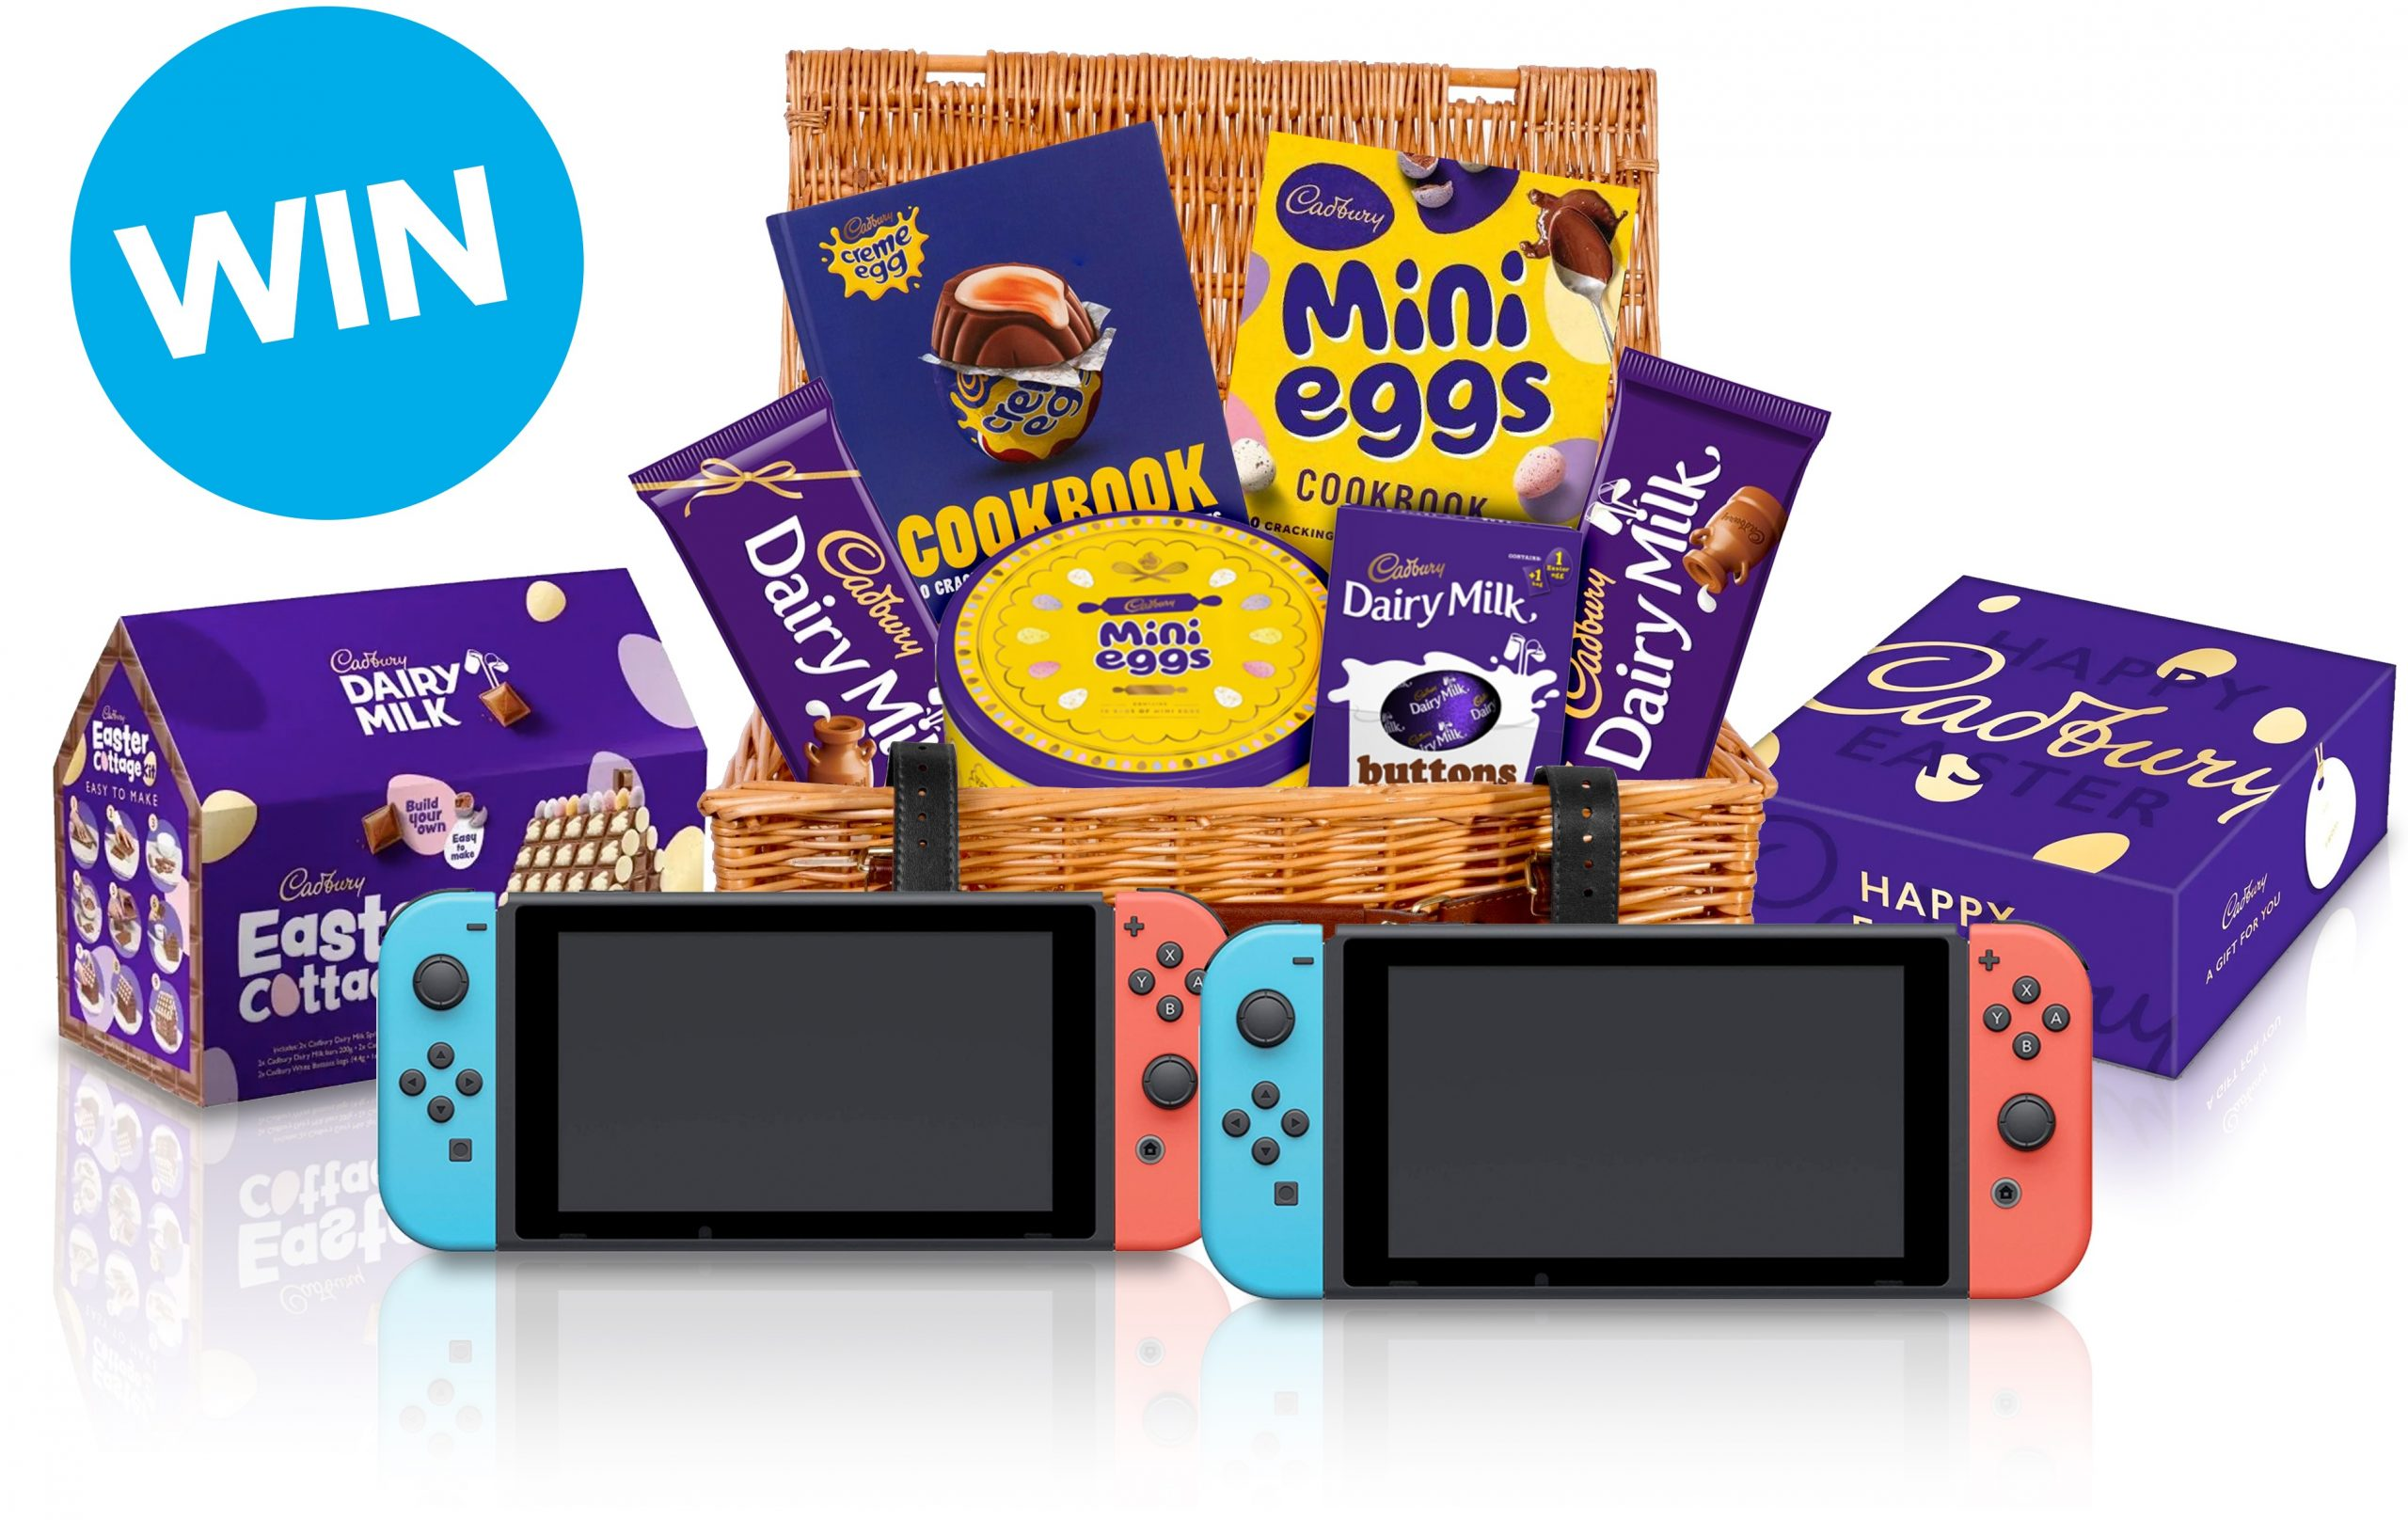 Gamification and TV Ads on the Menu for Costcutter this Easter